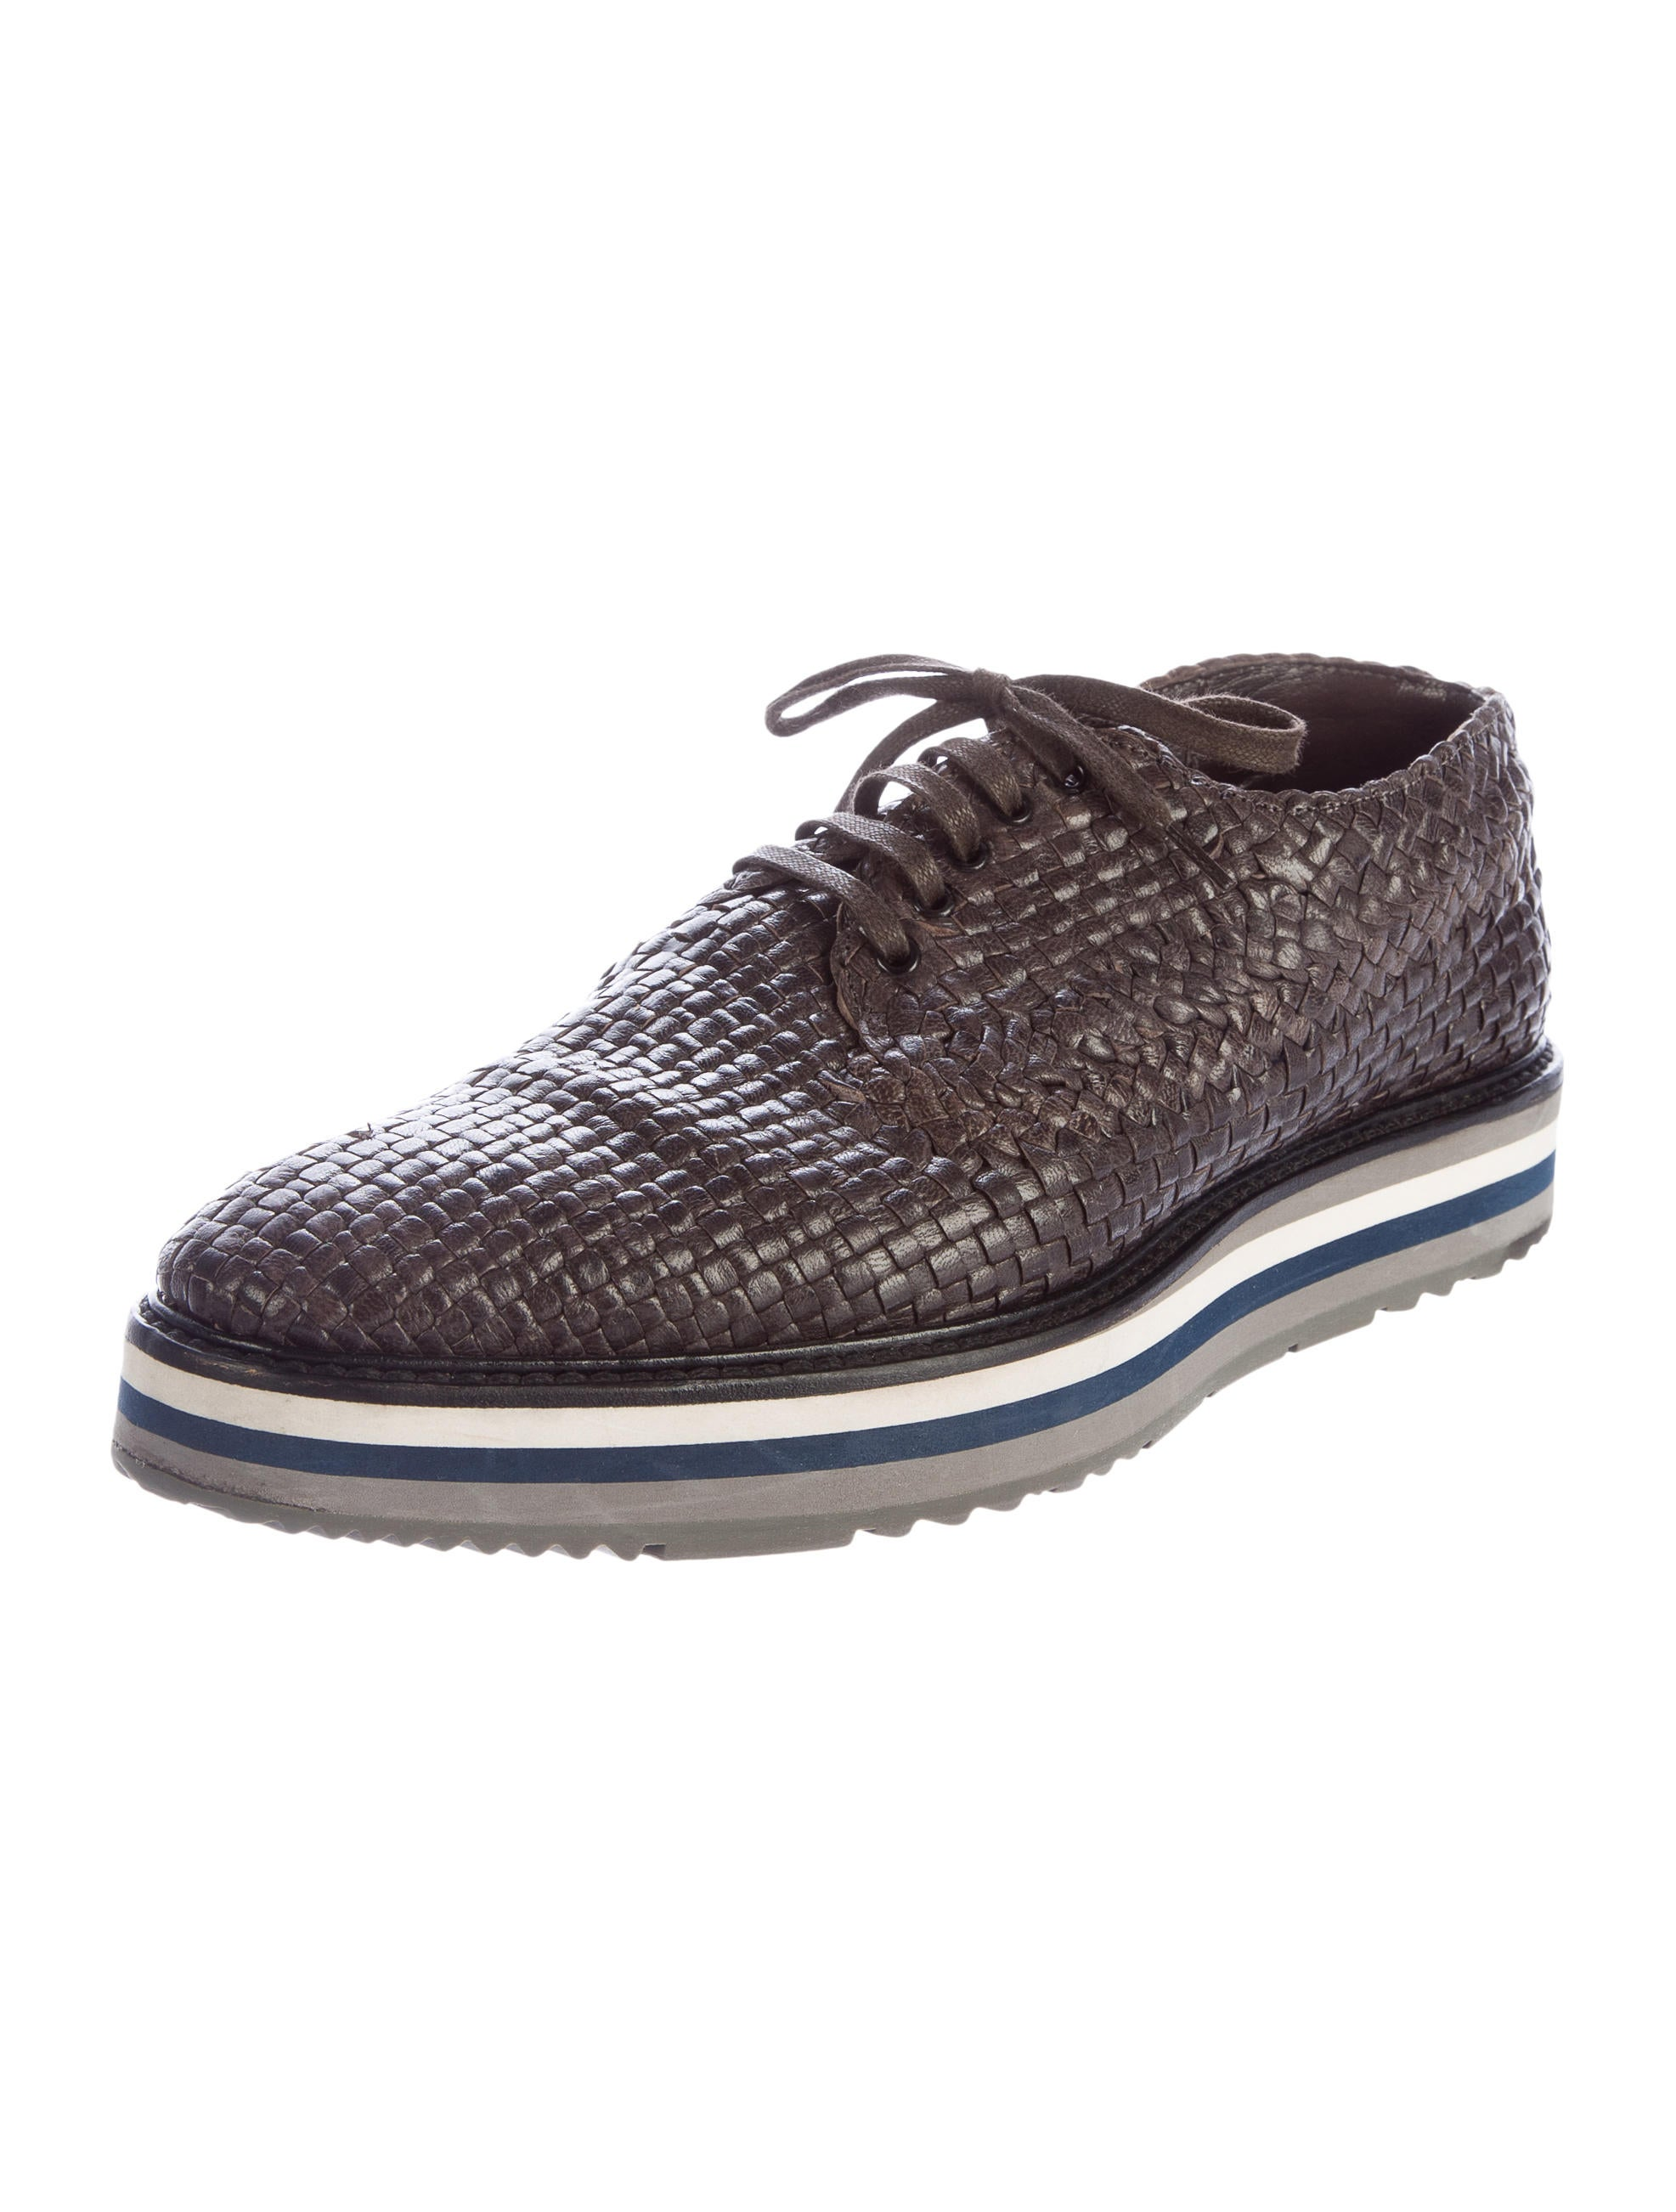 prada woven leather derby shoes shoes pra141003 the